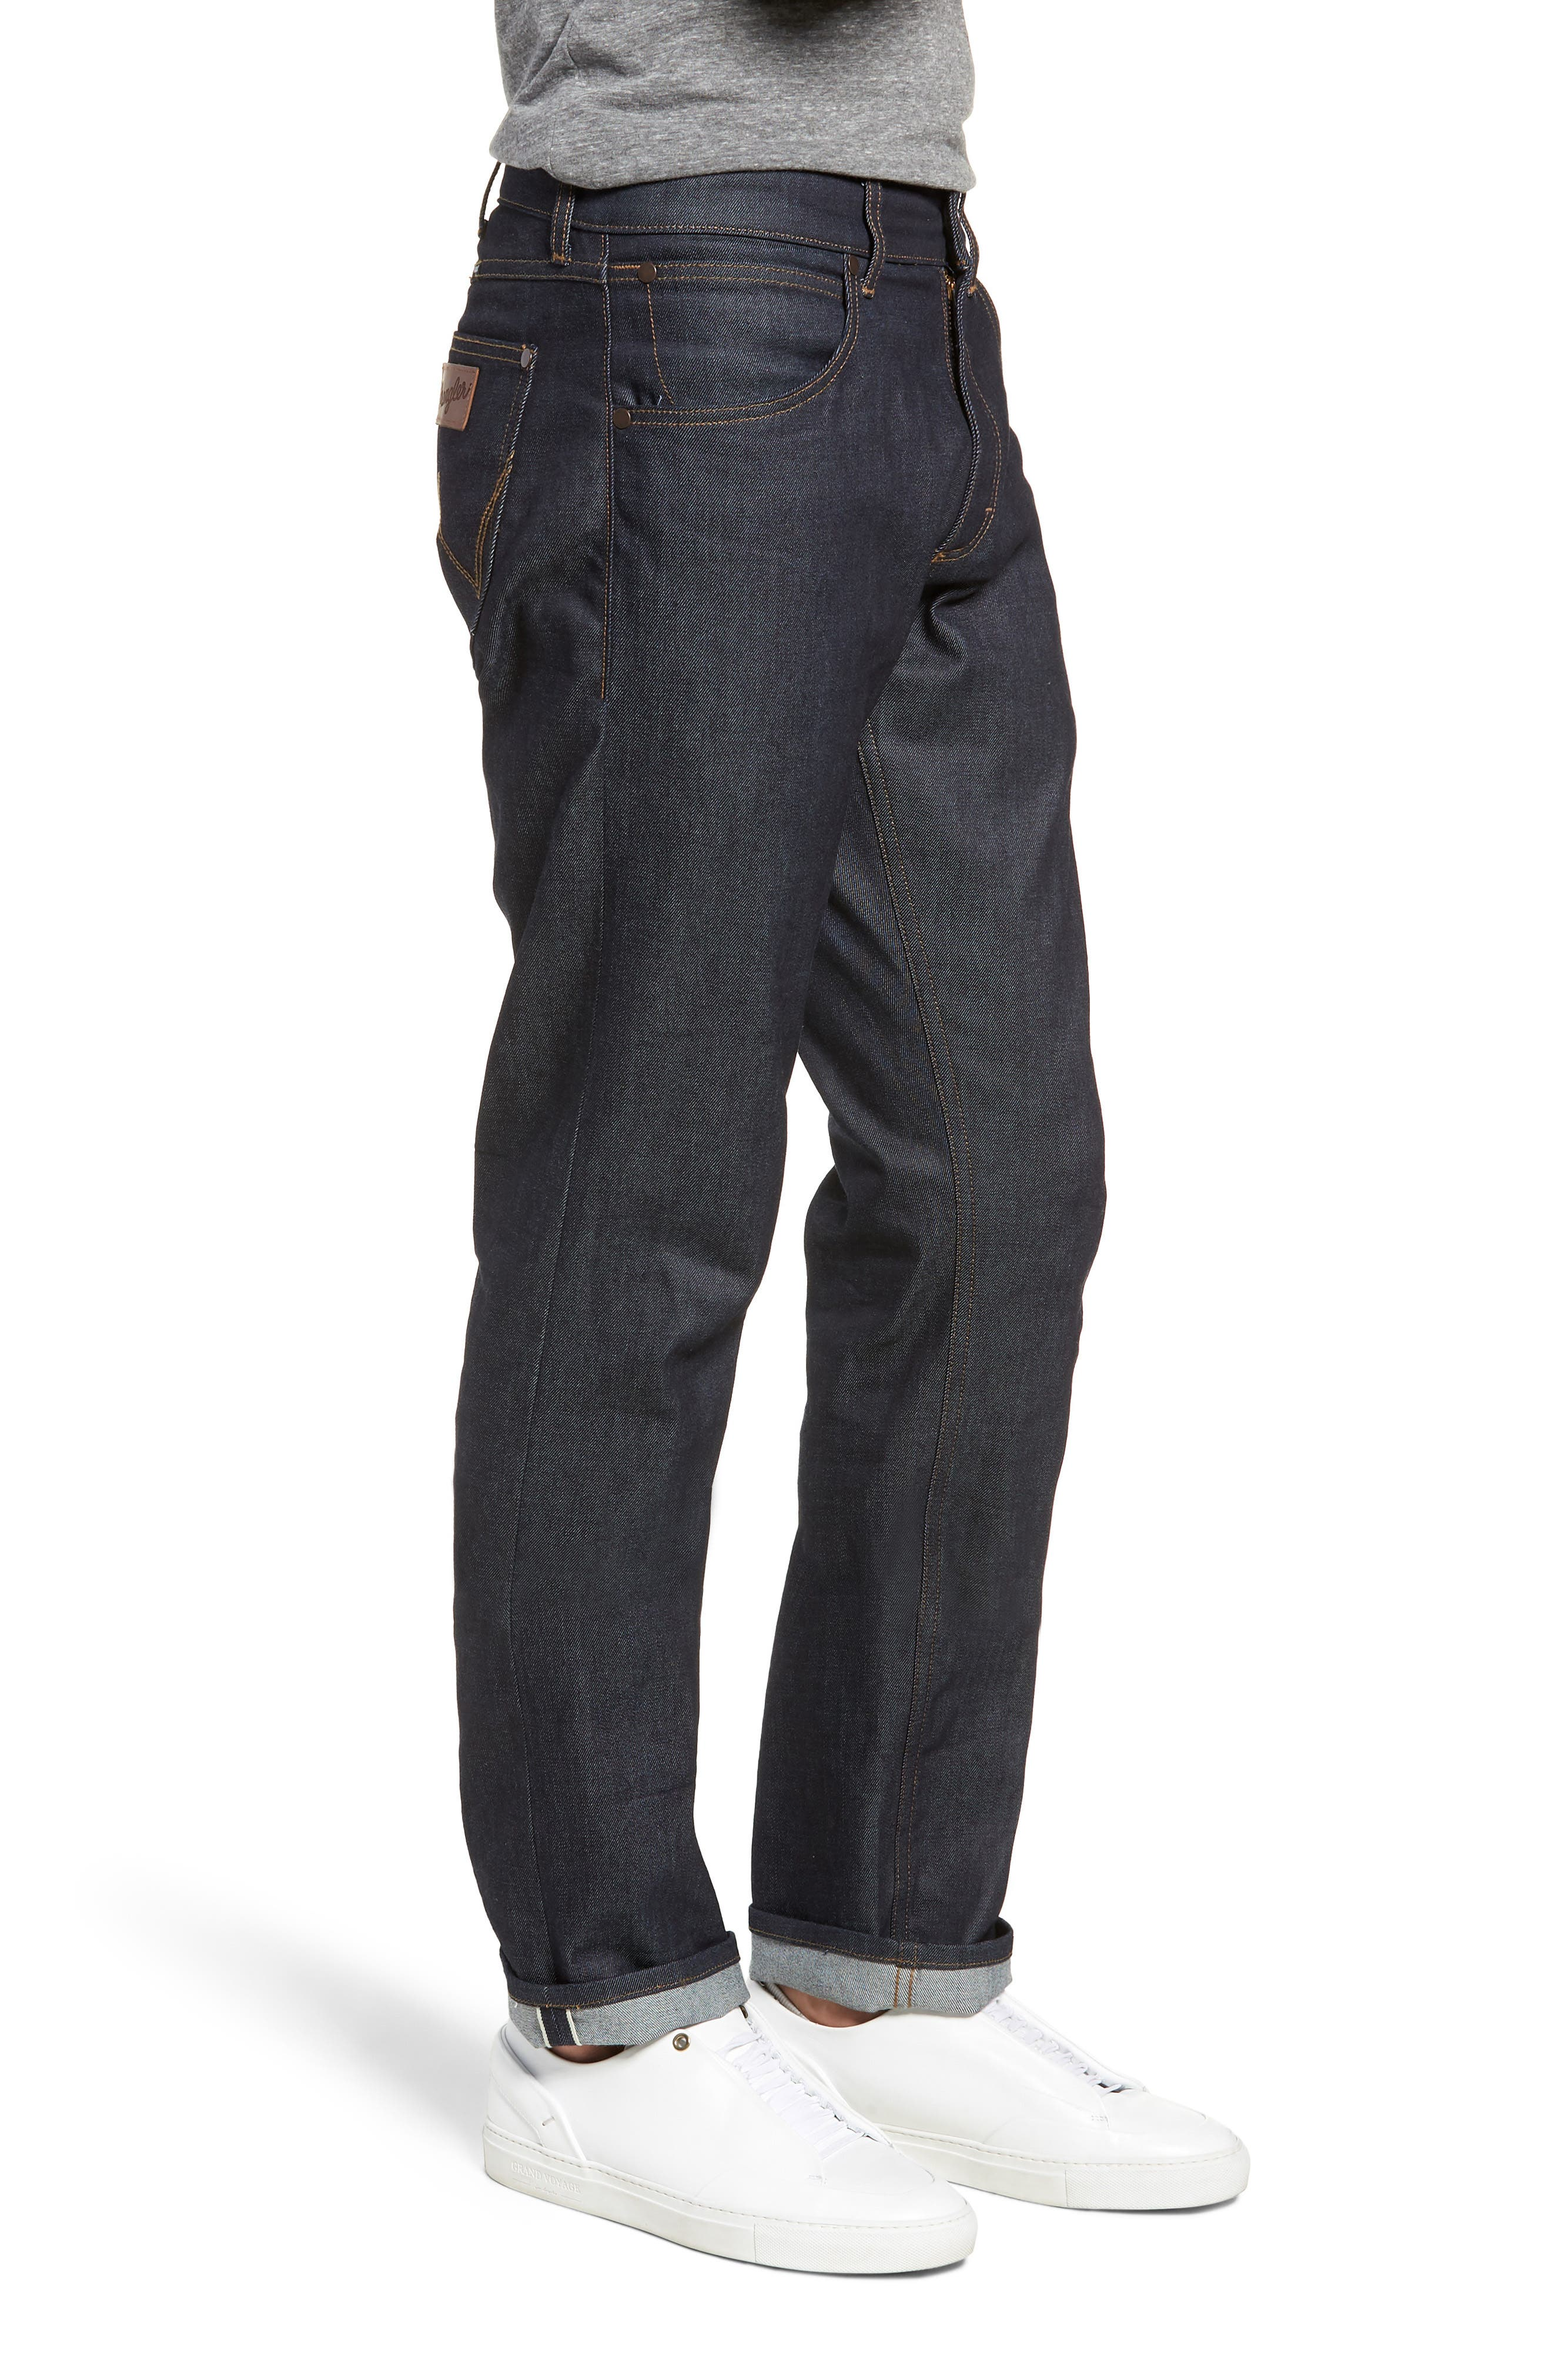 Greensboro Straight Leg Jeans,                             Alternate thumbnail 3, color,                             472